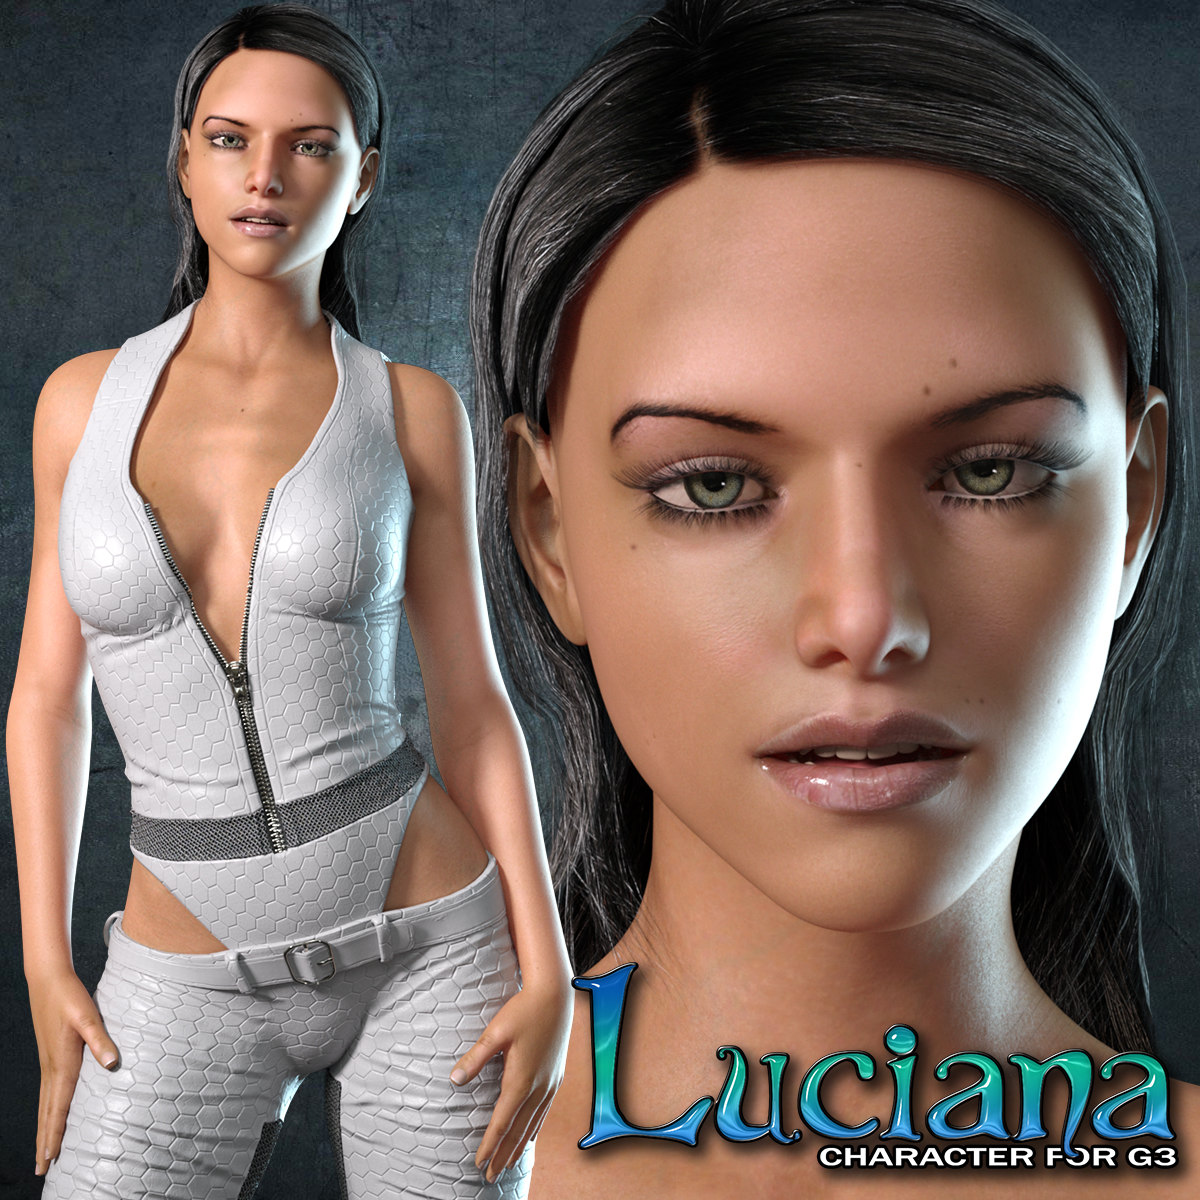 Exnem Luciana Character for G8 Female